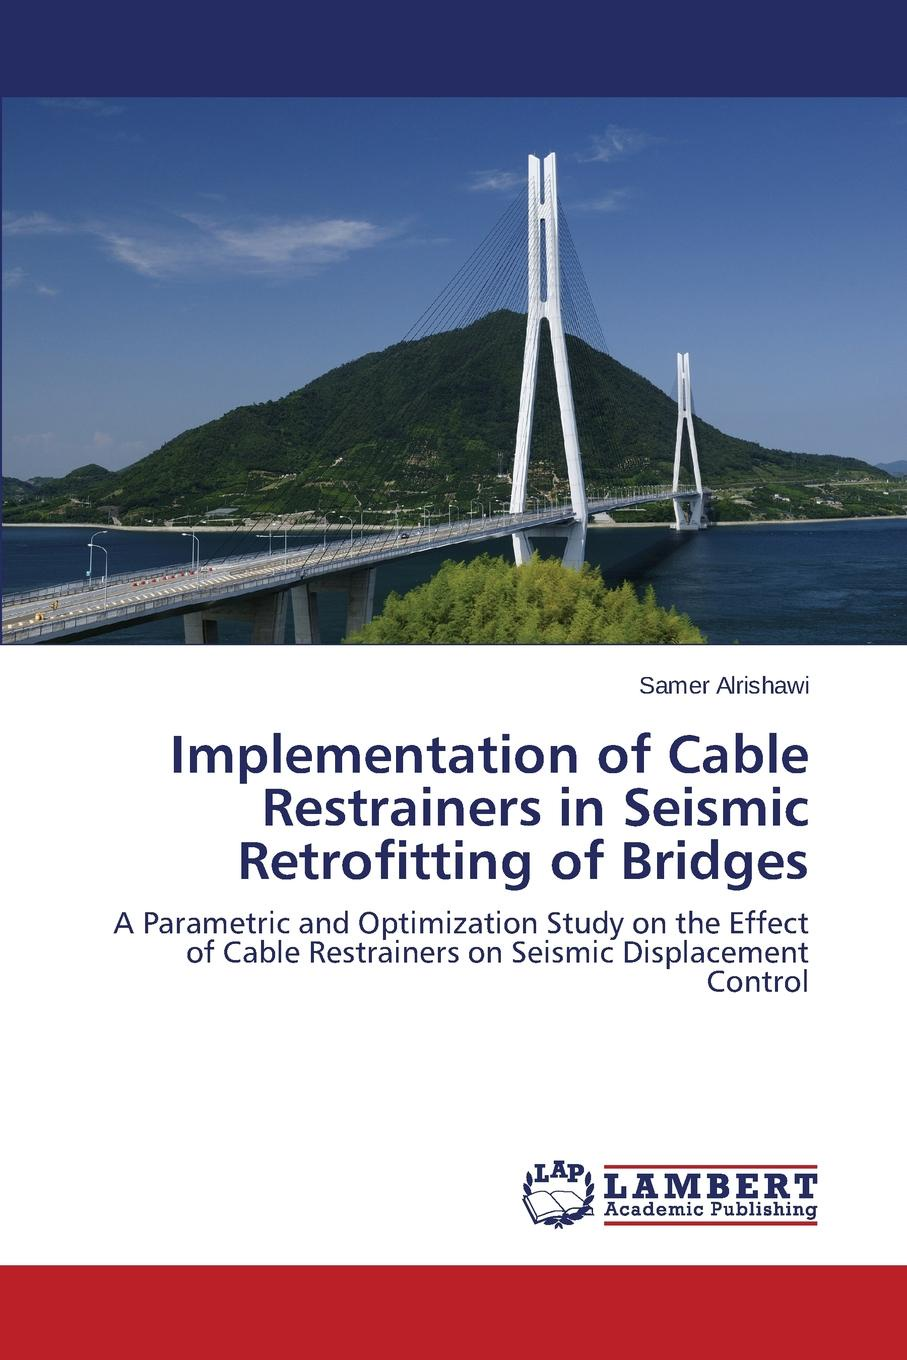 Alrishawi Samer Implementation of Cable Restrainers in Seismic Retrofitting of Bridges you lin xu wind effects on cable supported bridges